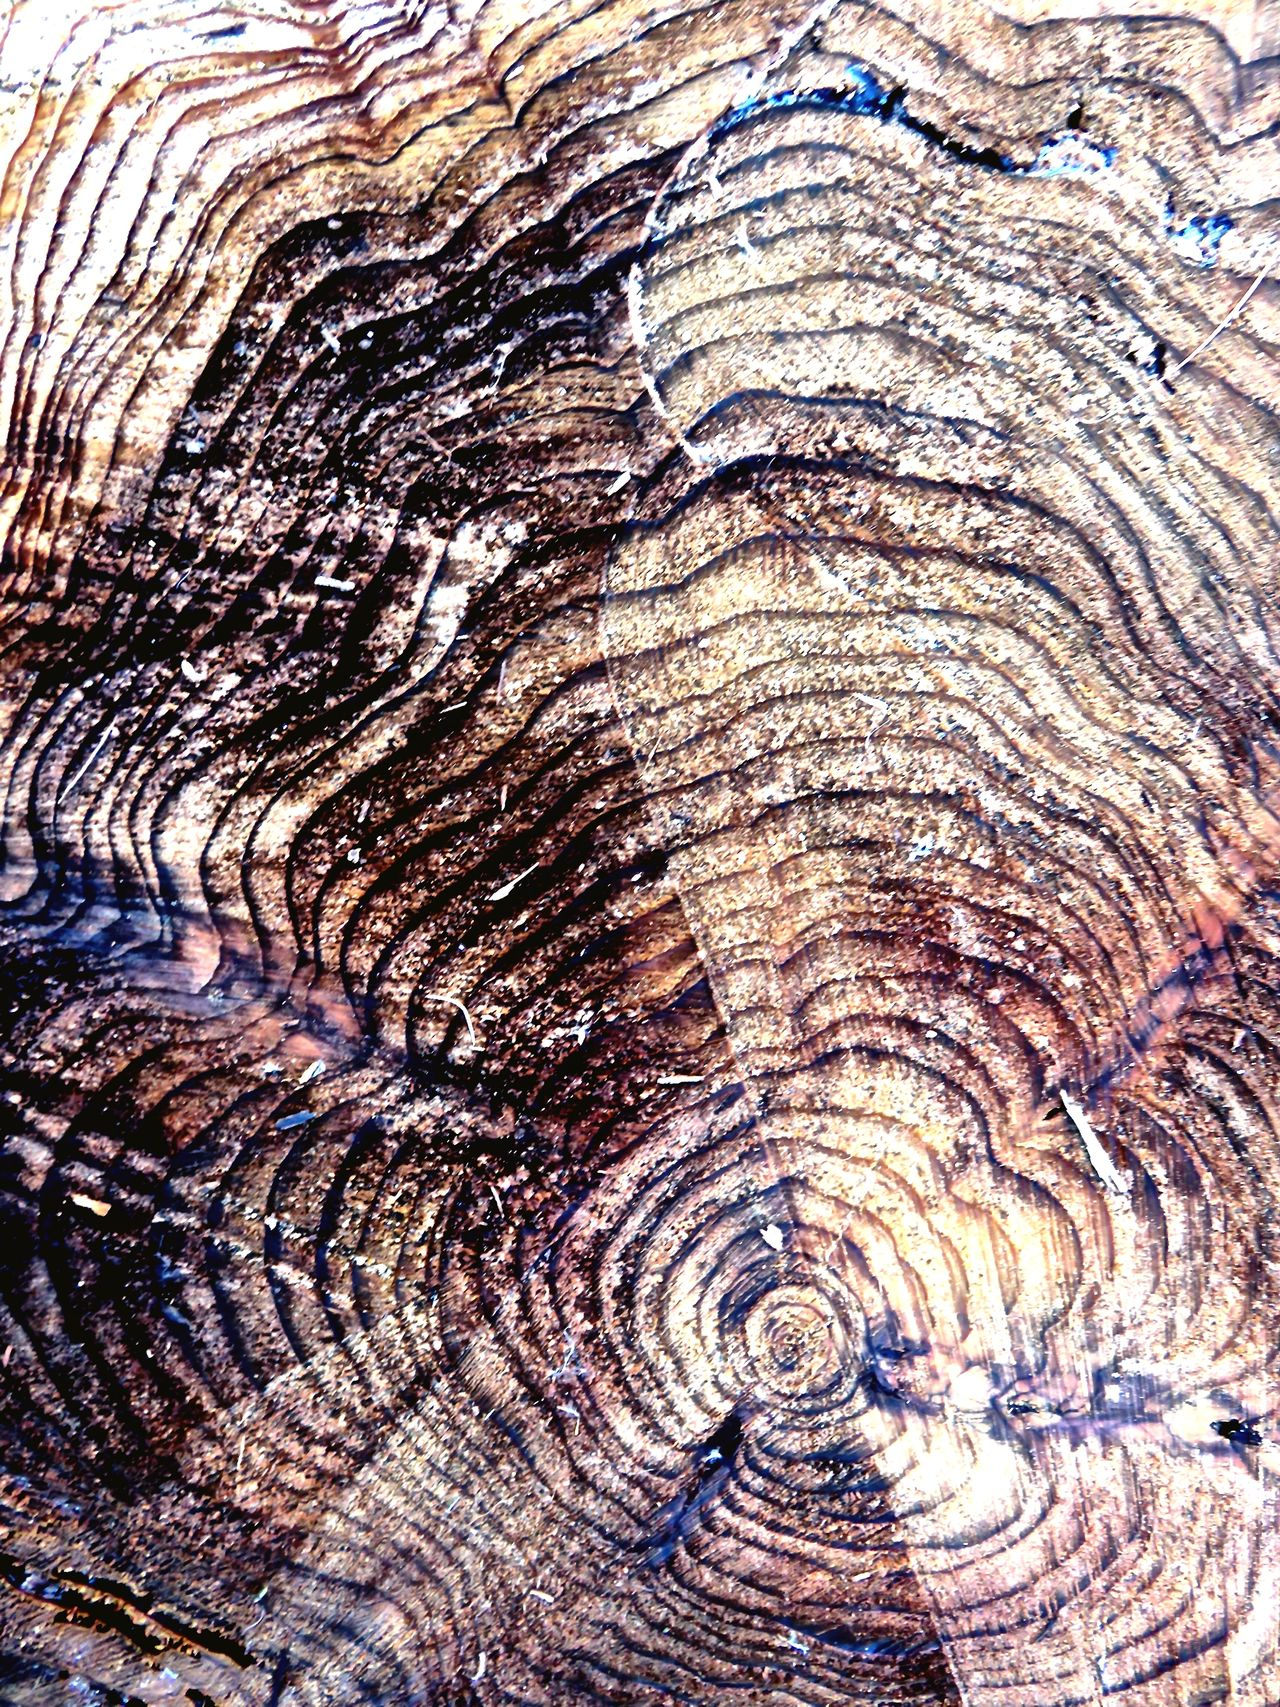 This tree was planted in the ground when I was 9 years old. These tree circles are all years I've lived. Sugi Tree Stump Tree Rings Tree Lover Conection